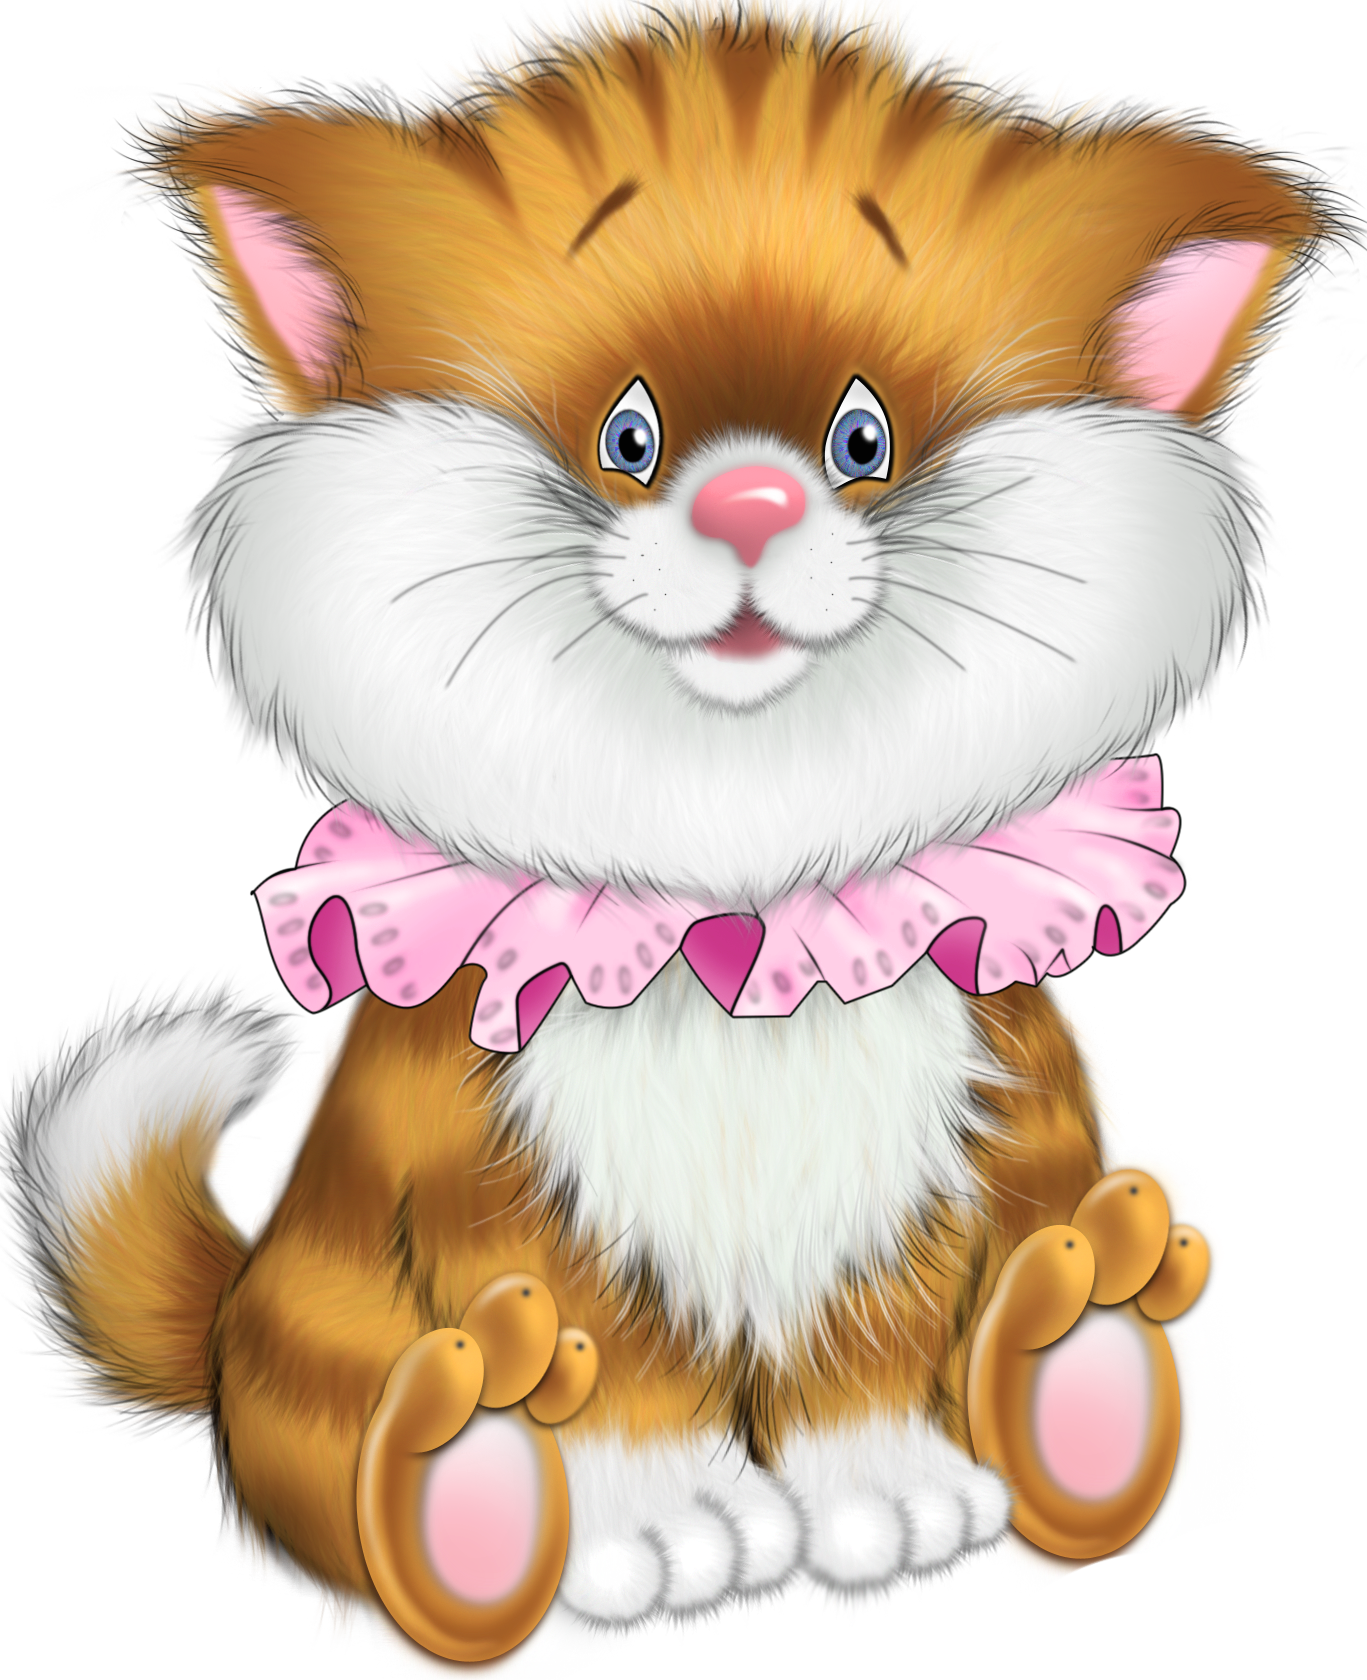 Cat birthday clipart jpg transparent stock Tiger Clip Art Images Images | Crazy Gallery - Leechh Link Site ... jpg transparent stock